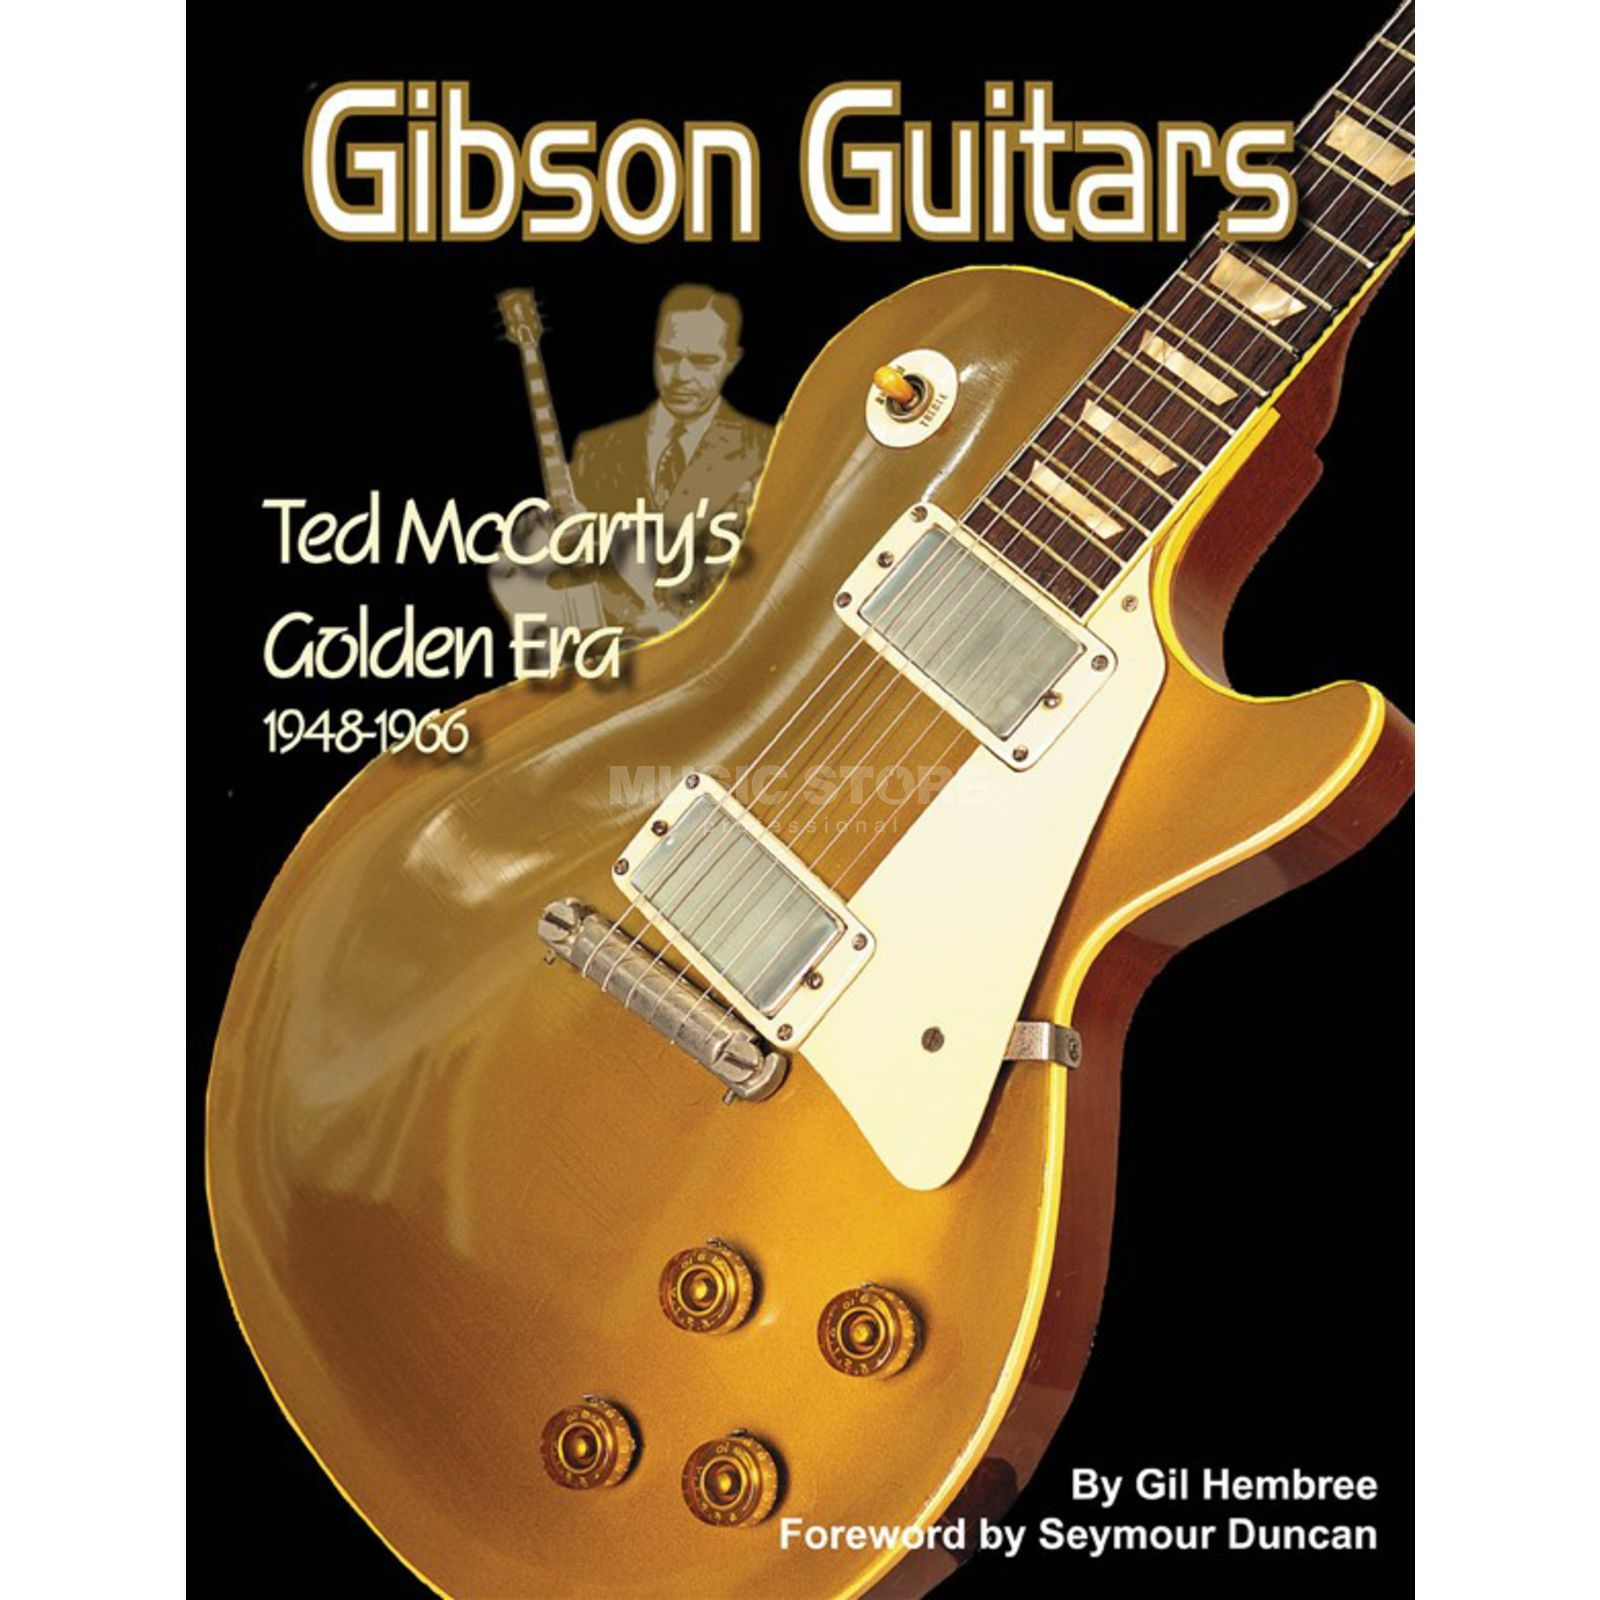 Hal Leonard Gil Hembree: Gibson Guitars - Ted McCarty's Golden Era Produktbillede